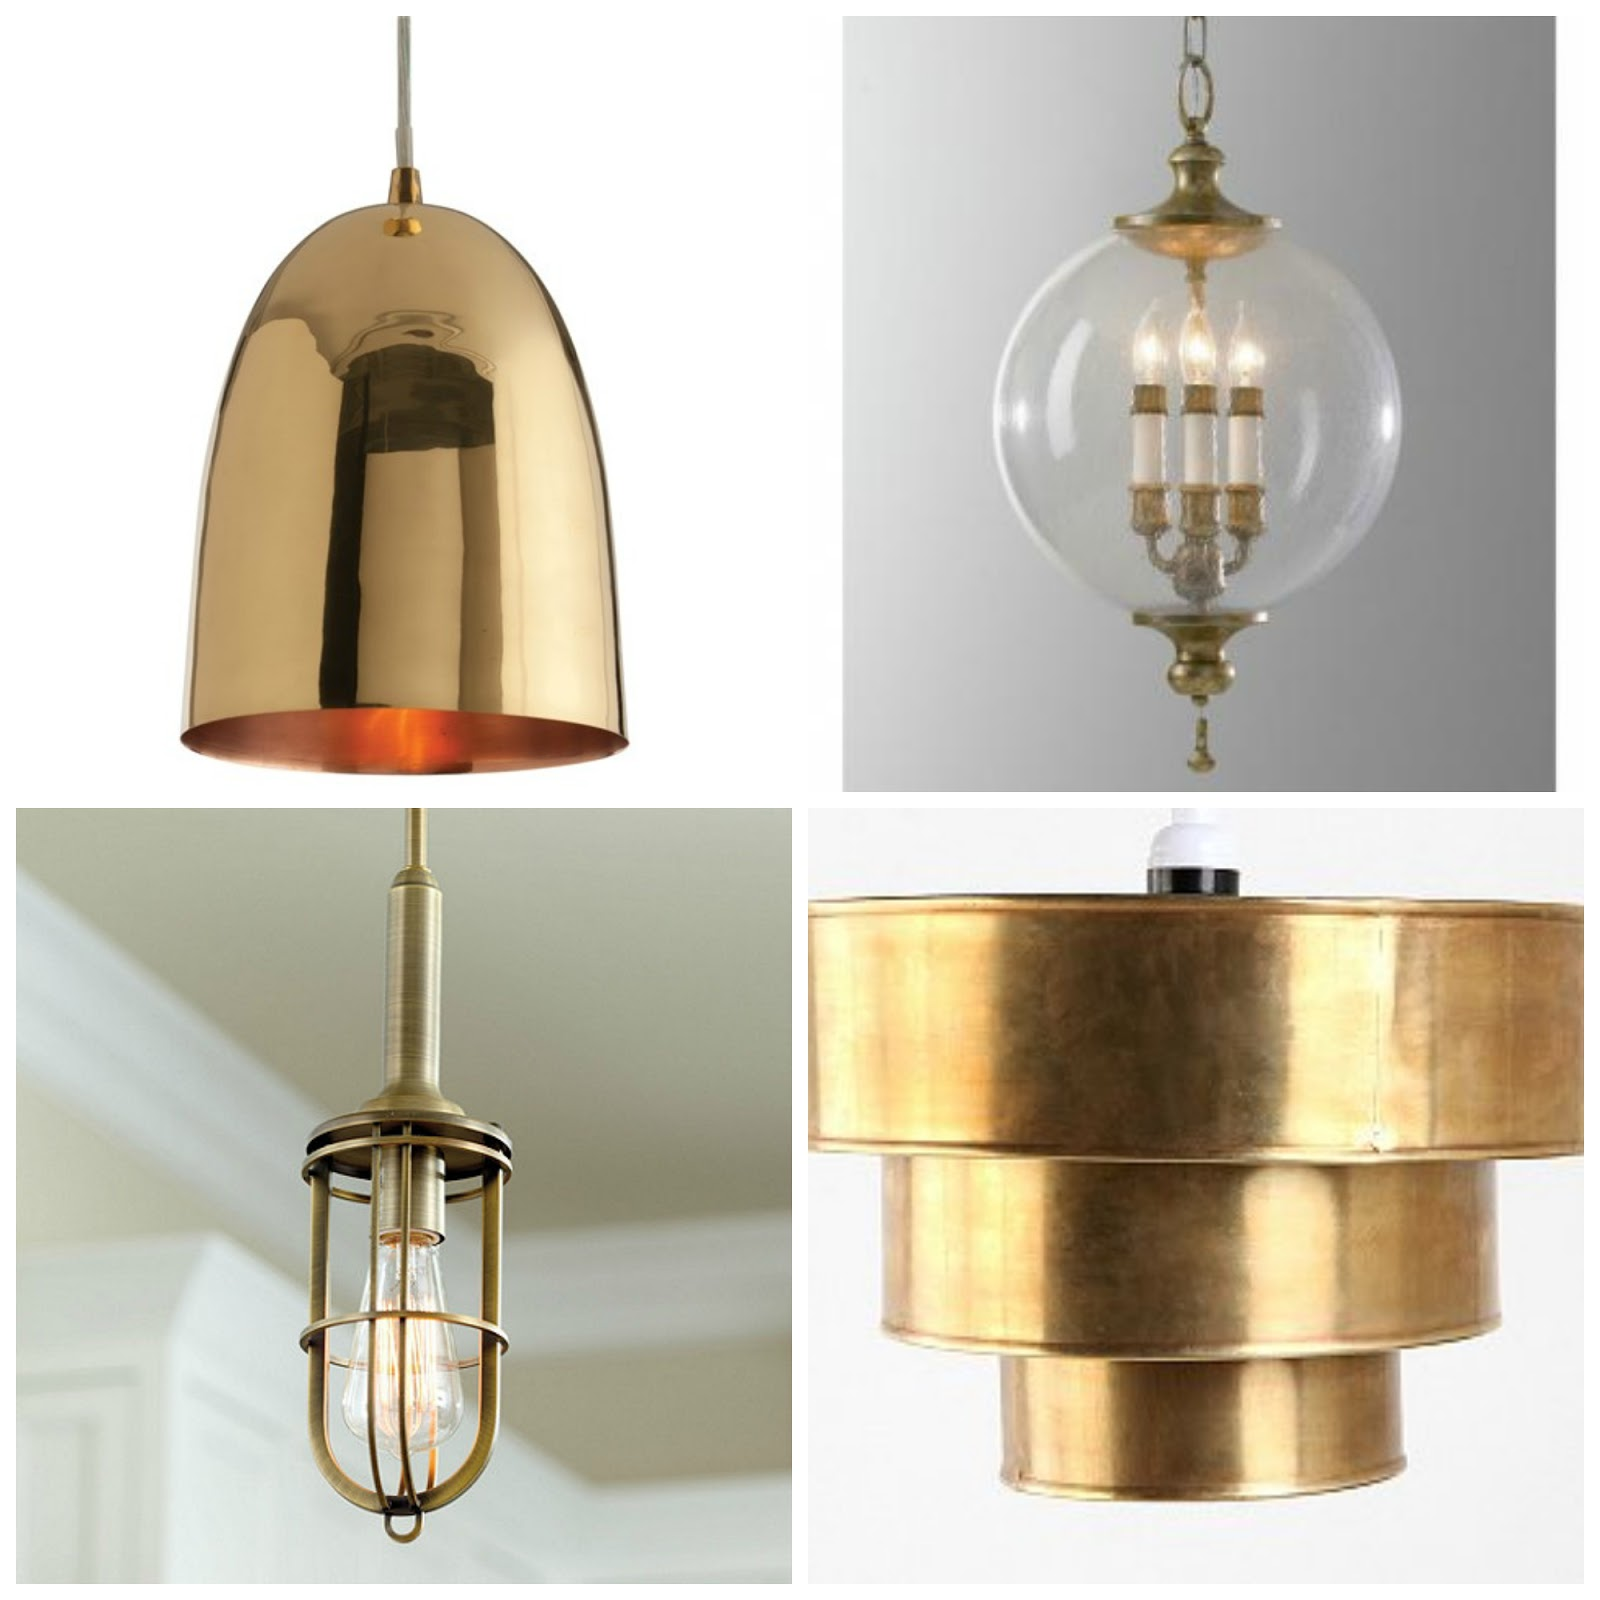 Light Fixtures Kitchen: Rosa Beltran Design: BRASS PENDANT / CEILING LIGHT ROUND UP